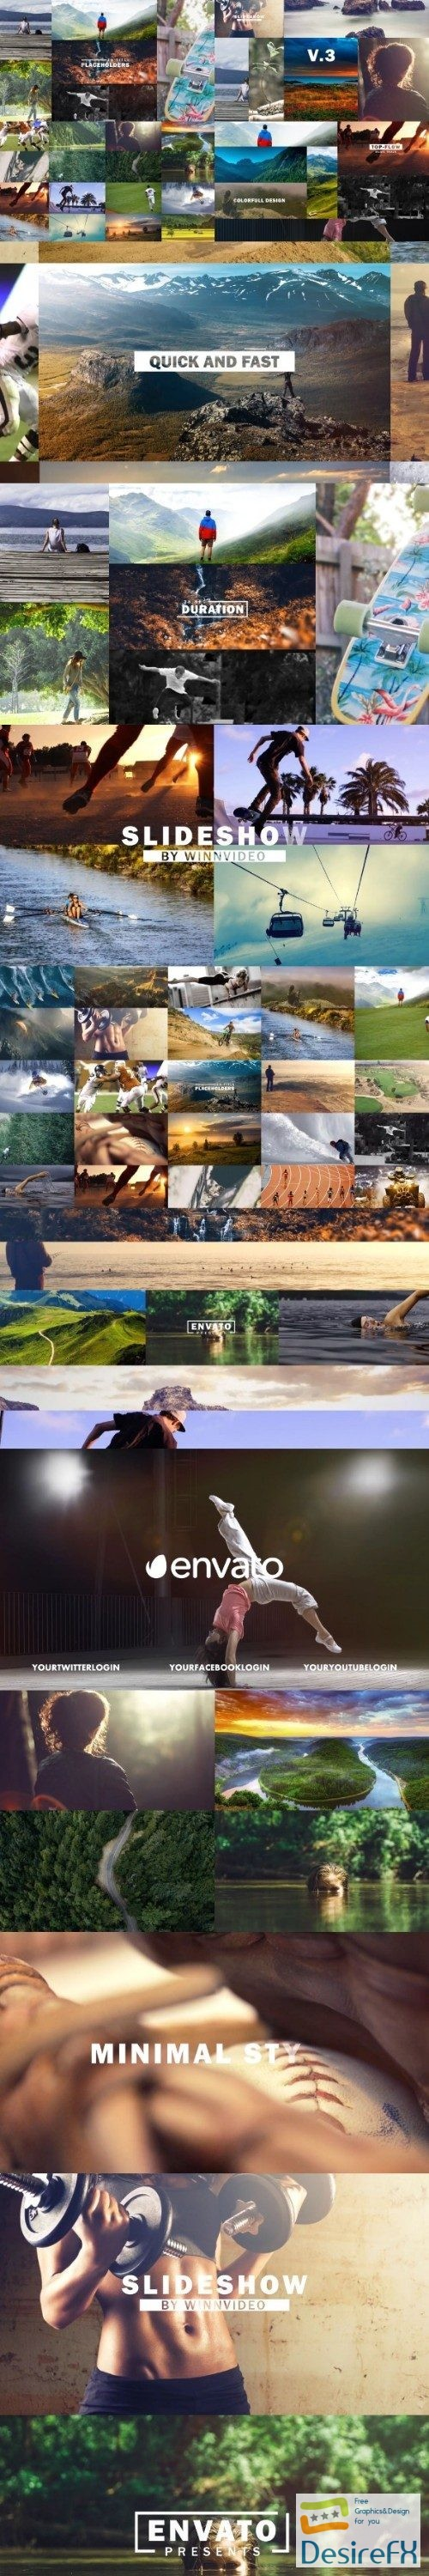 after-effects-projects - Videohive The Slideshow V3 20544538